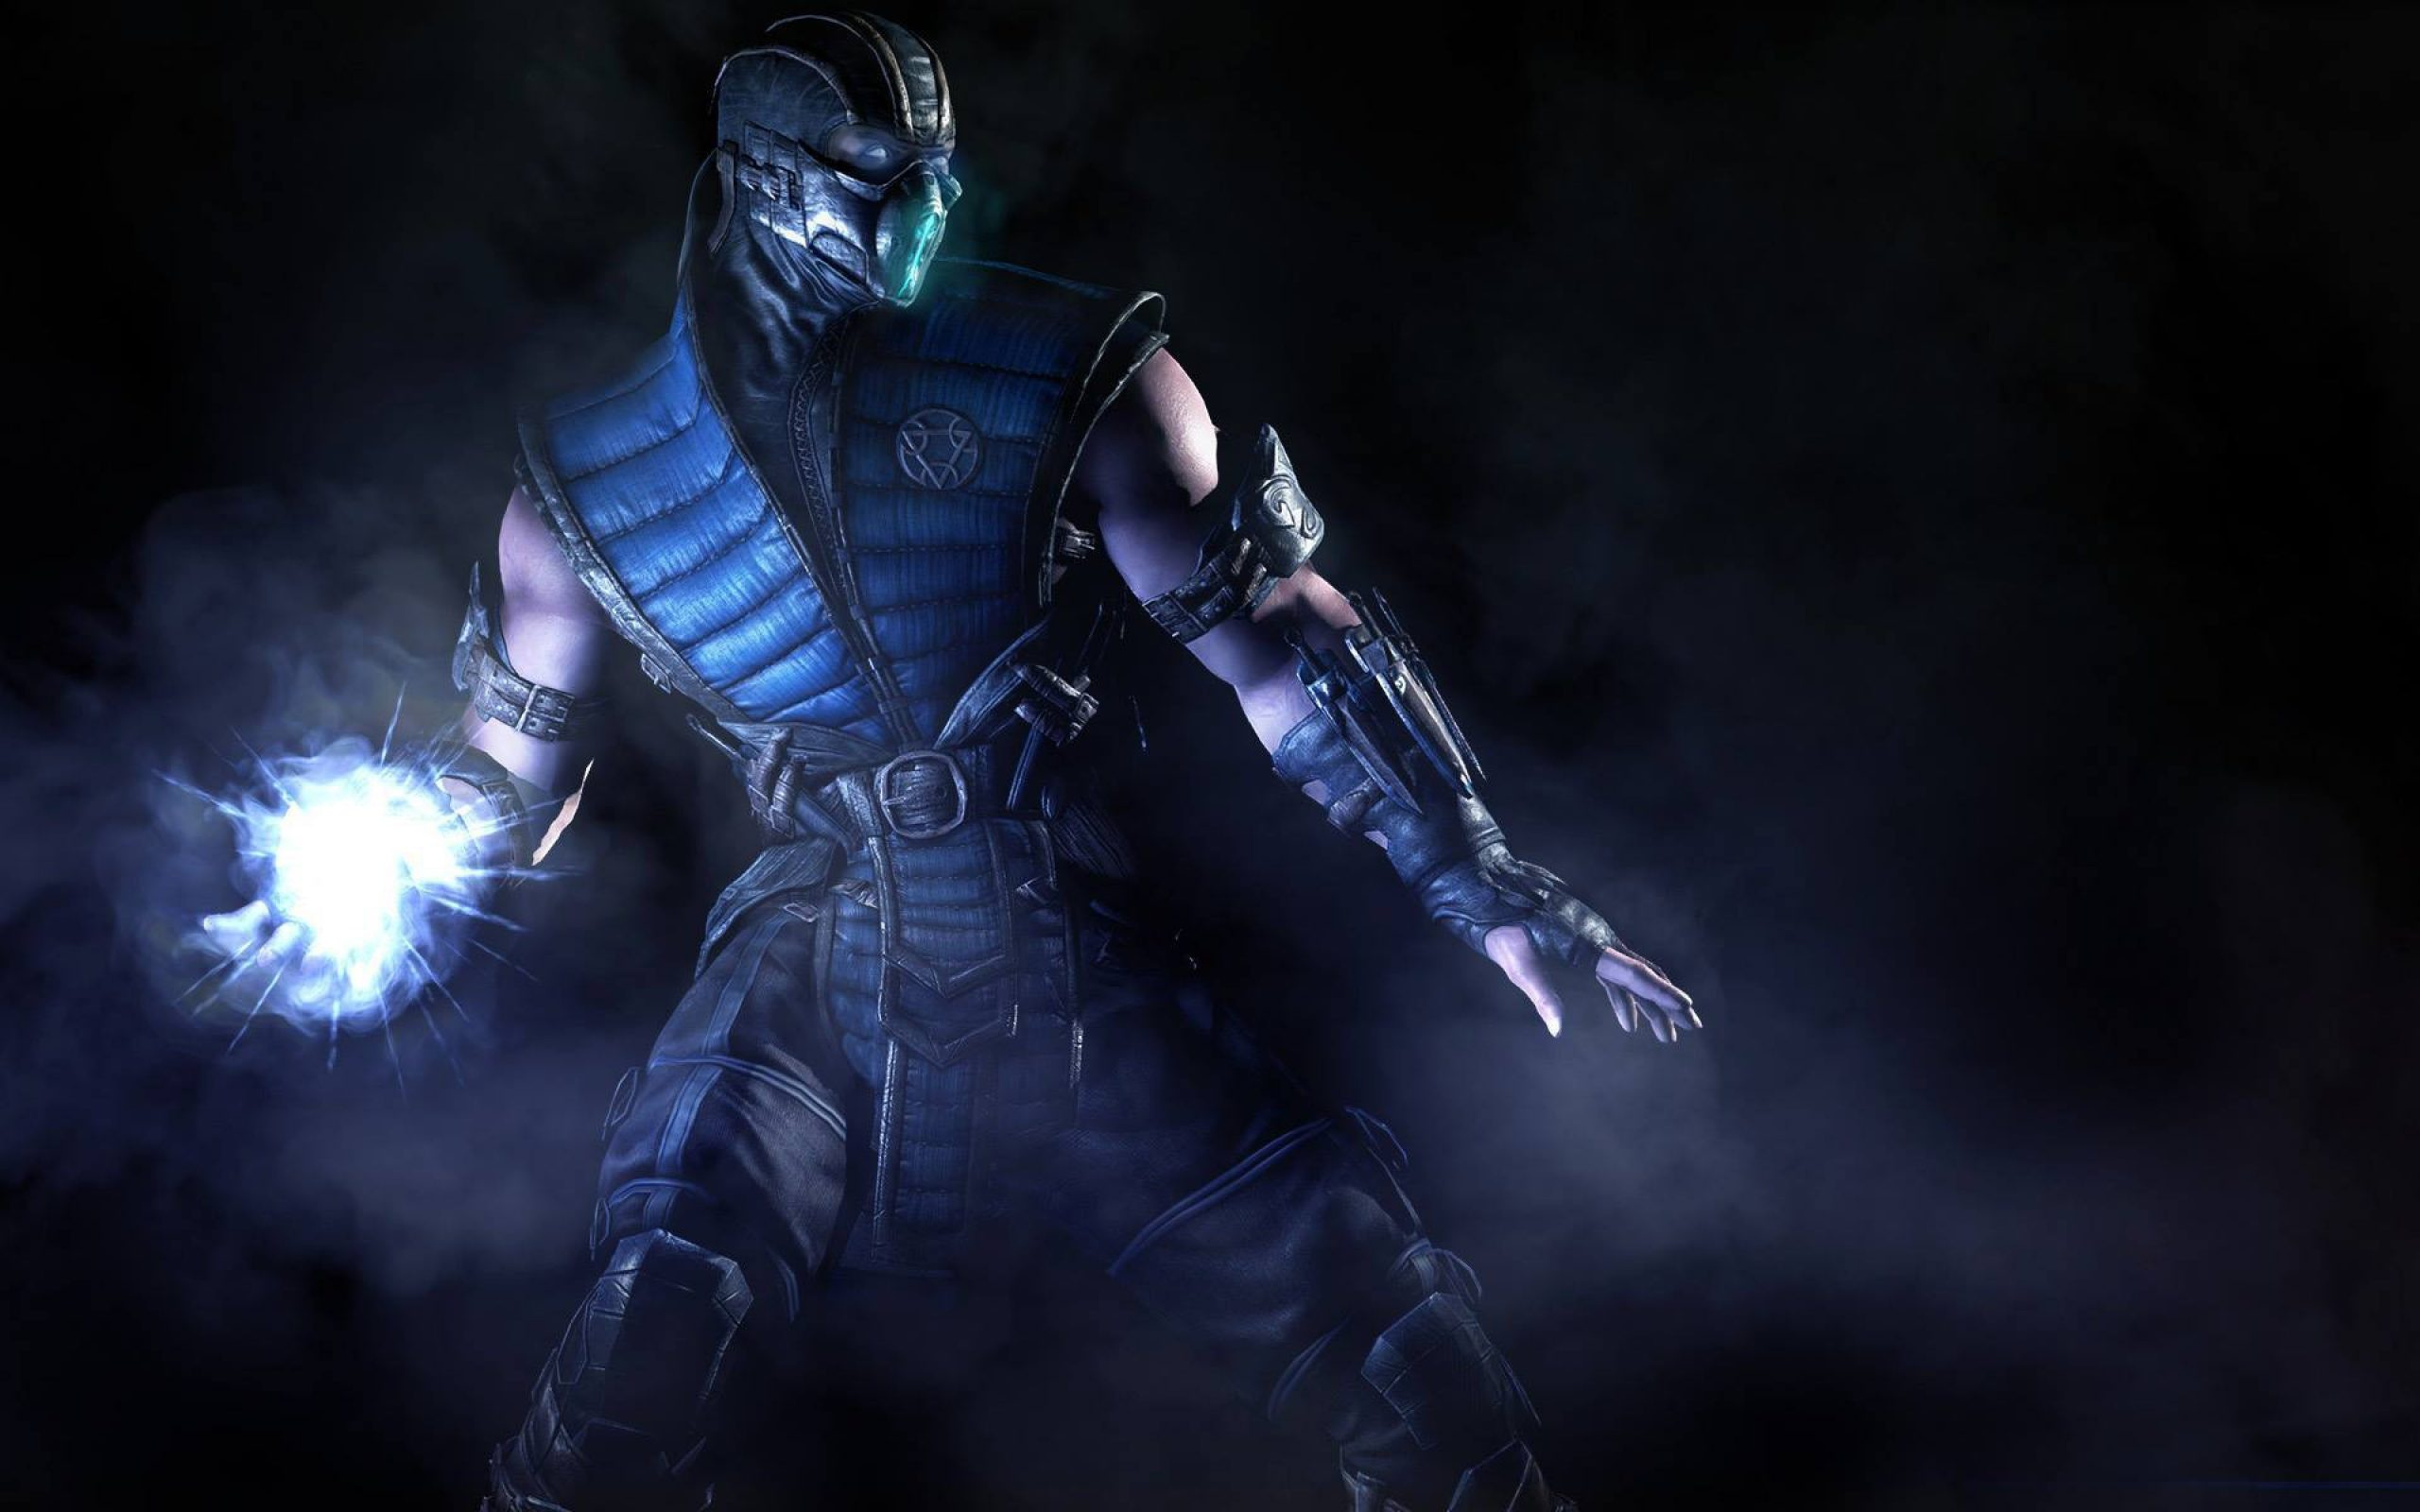 Mortal Kombat Photos 7